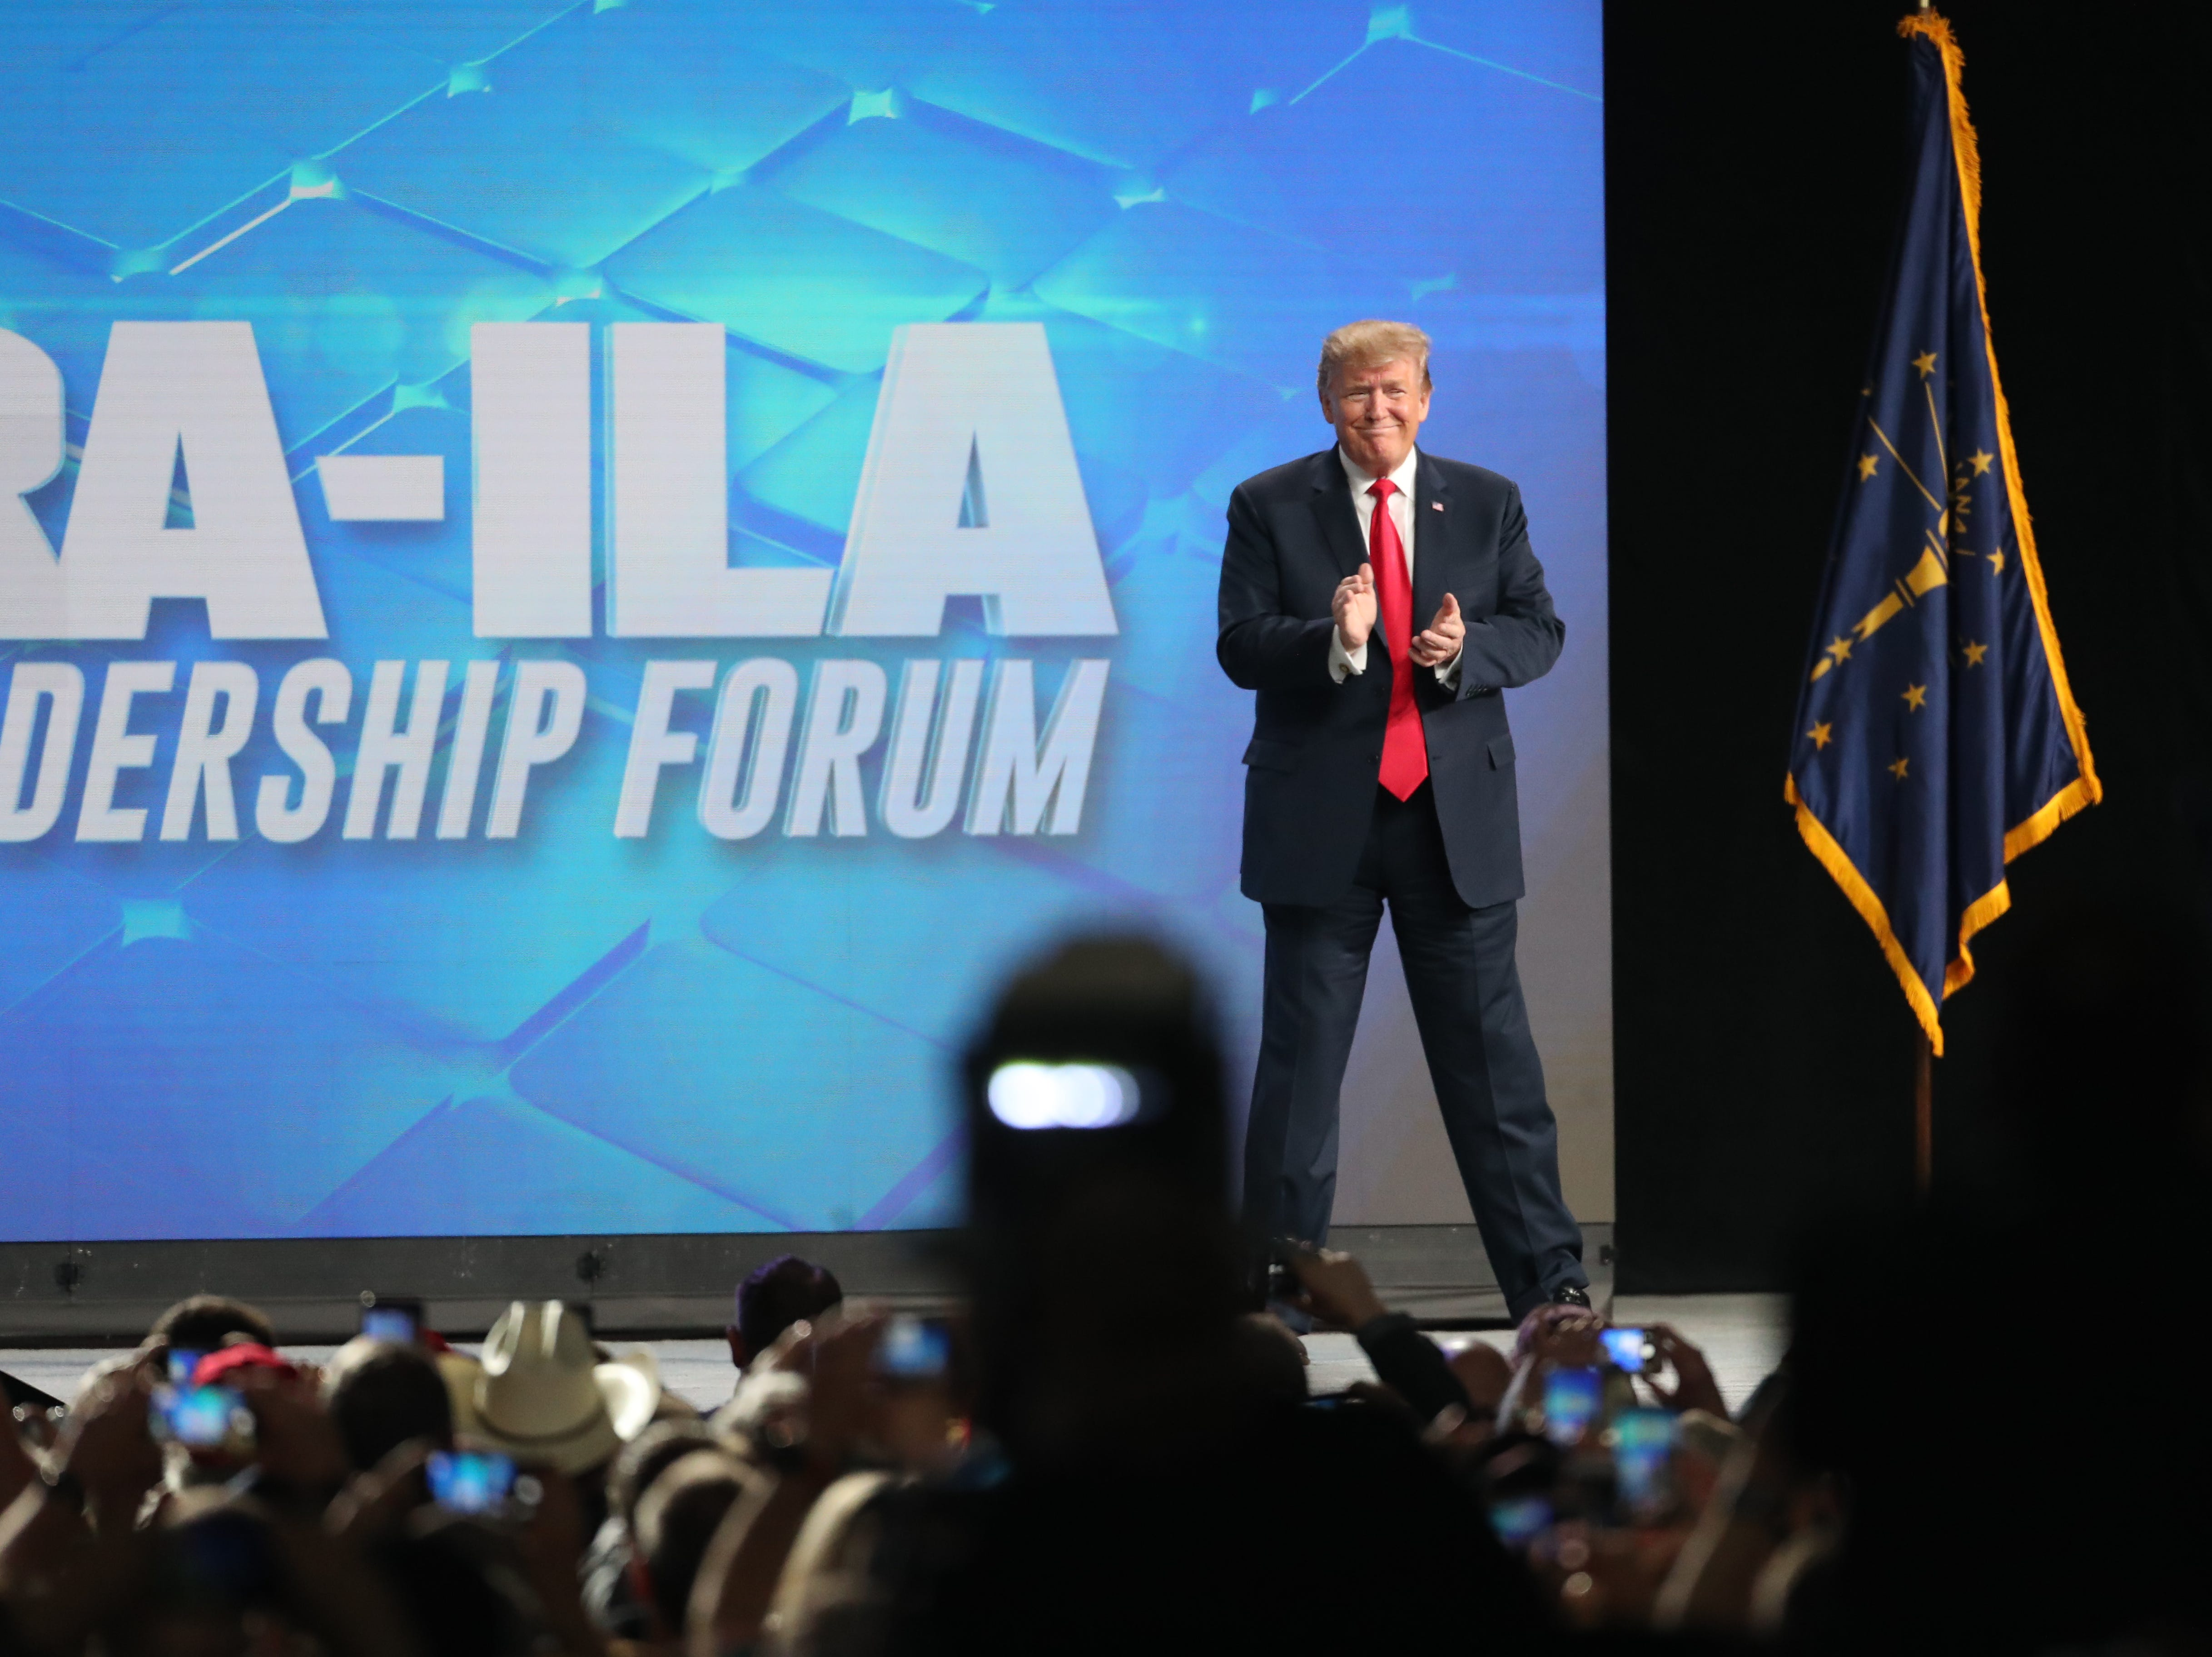 President Donald Trump arrives at the National Rifle Association Institute for Legislative Action Leadership Forum, Friday, April 26, 2019, at Lucas Oil Stadium in Indianapolis. The forum is part of the 148th NRA annual meetings and exhibits in Indianapolis.